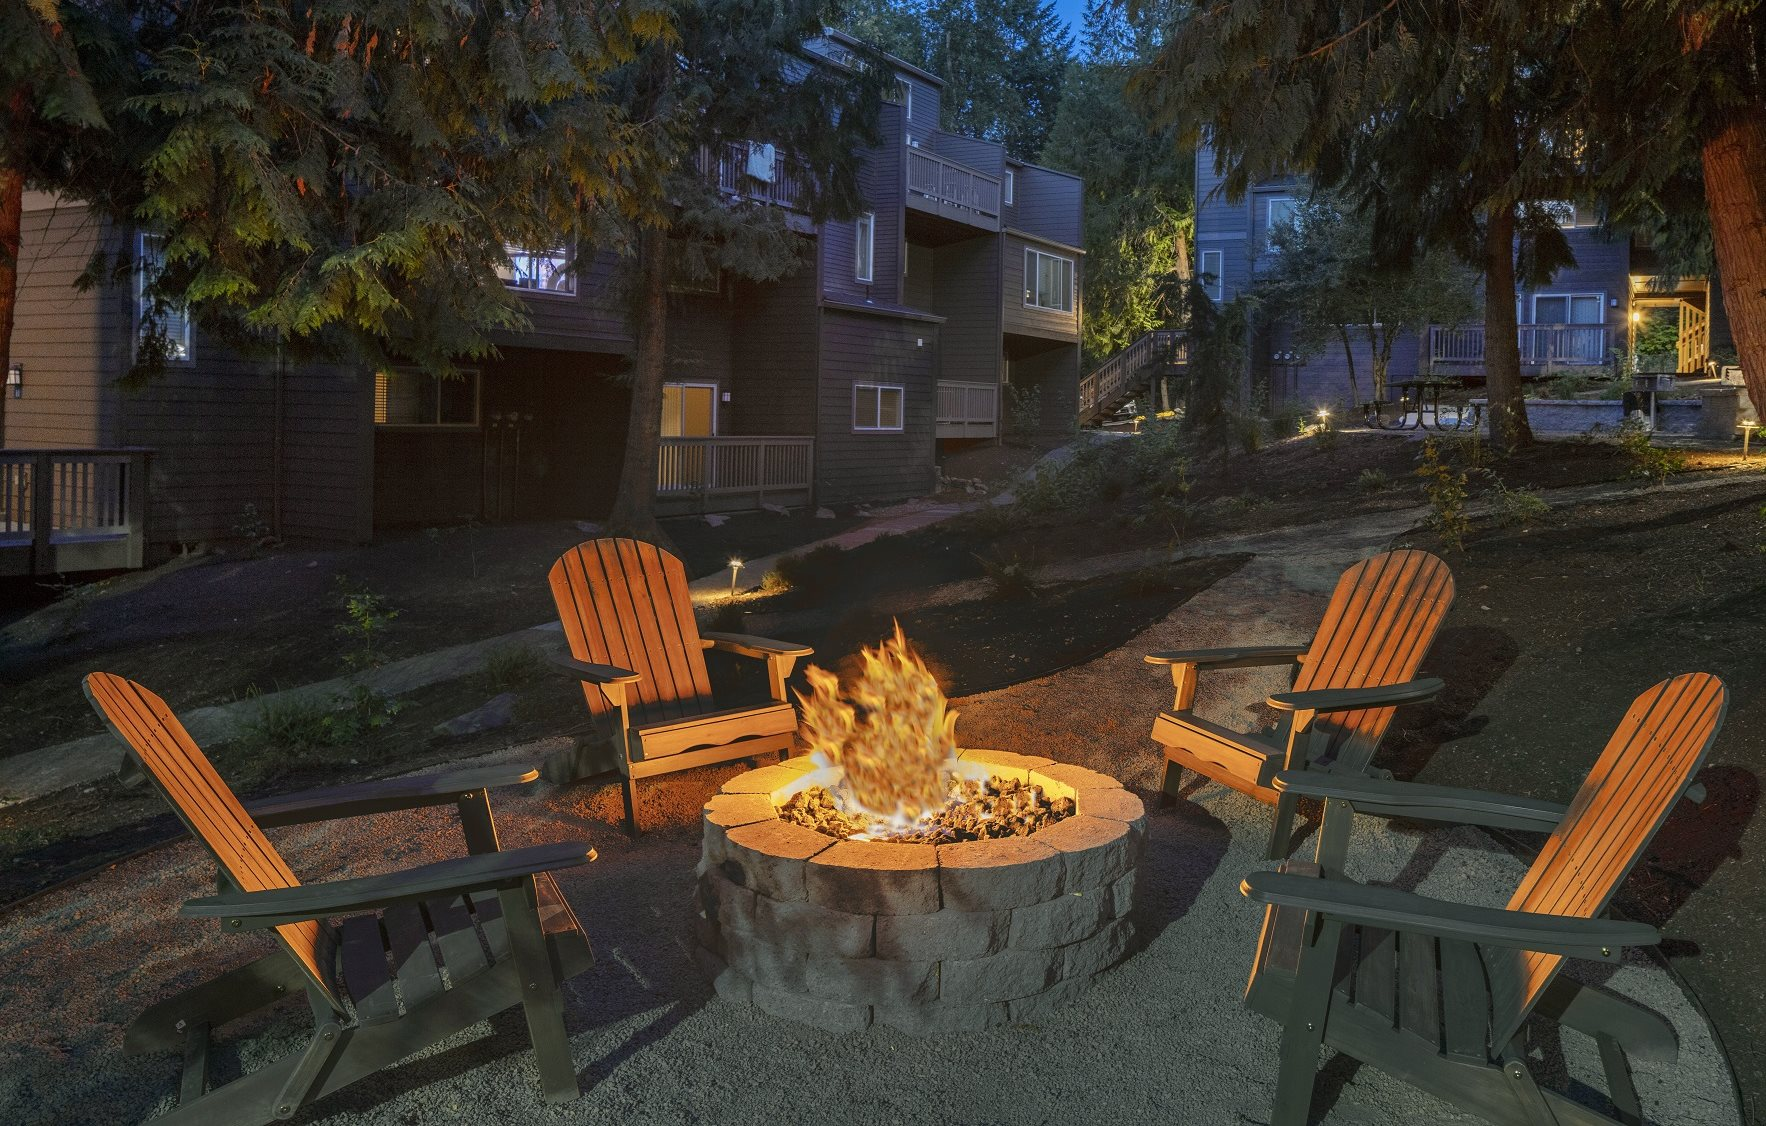 Larkspur West Linn Outdoor Fire Pit